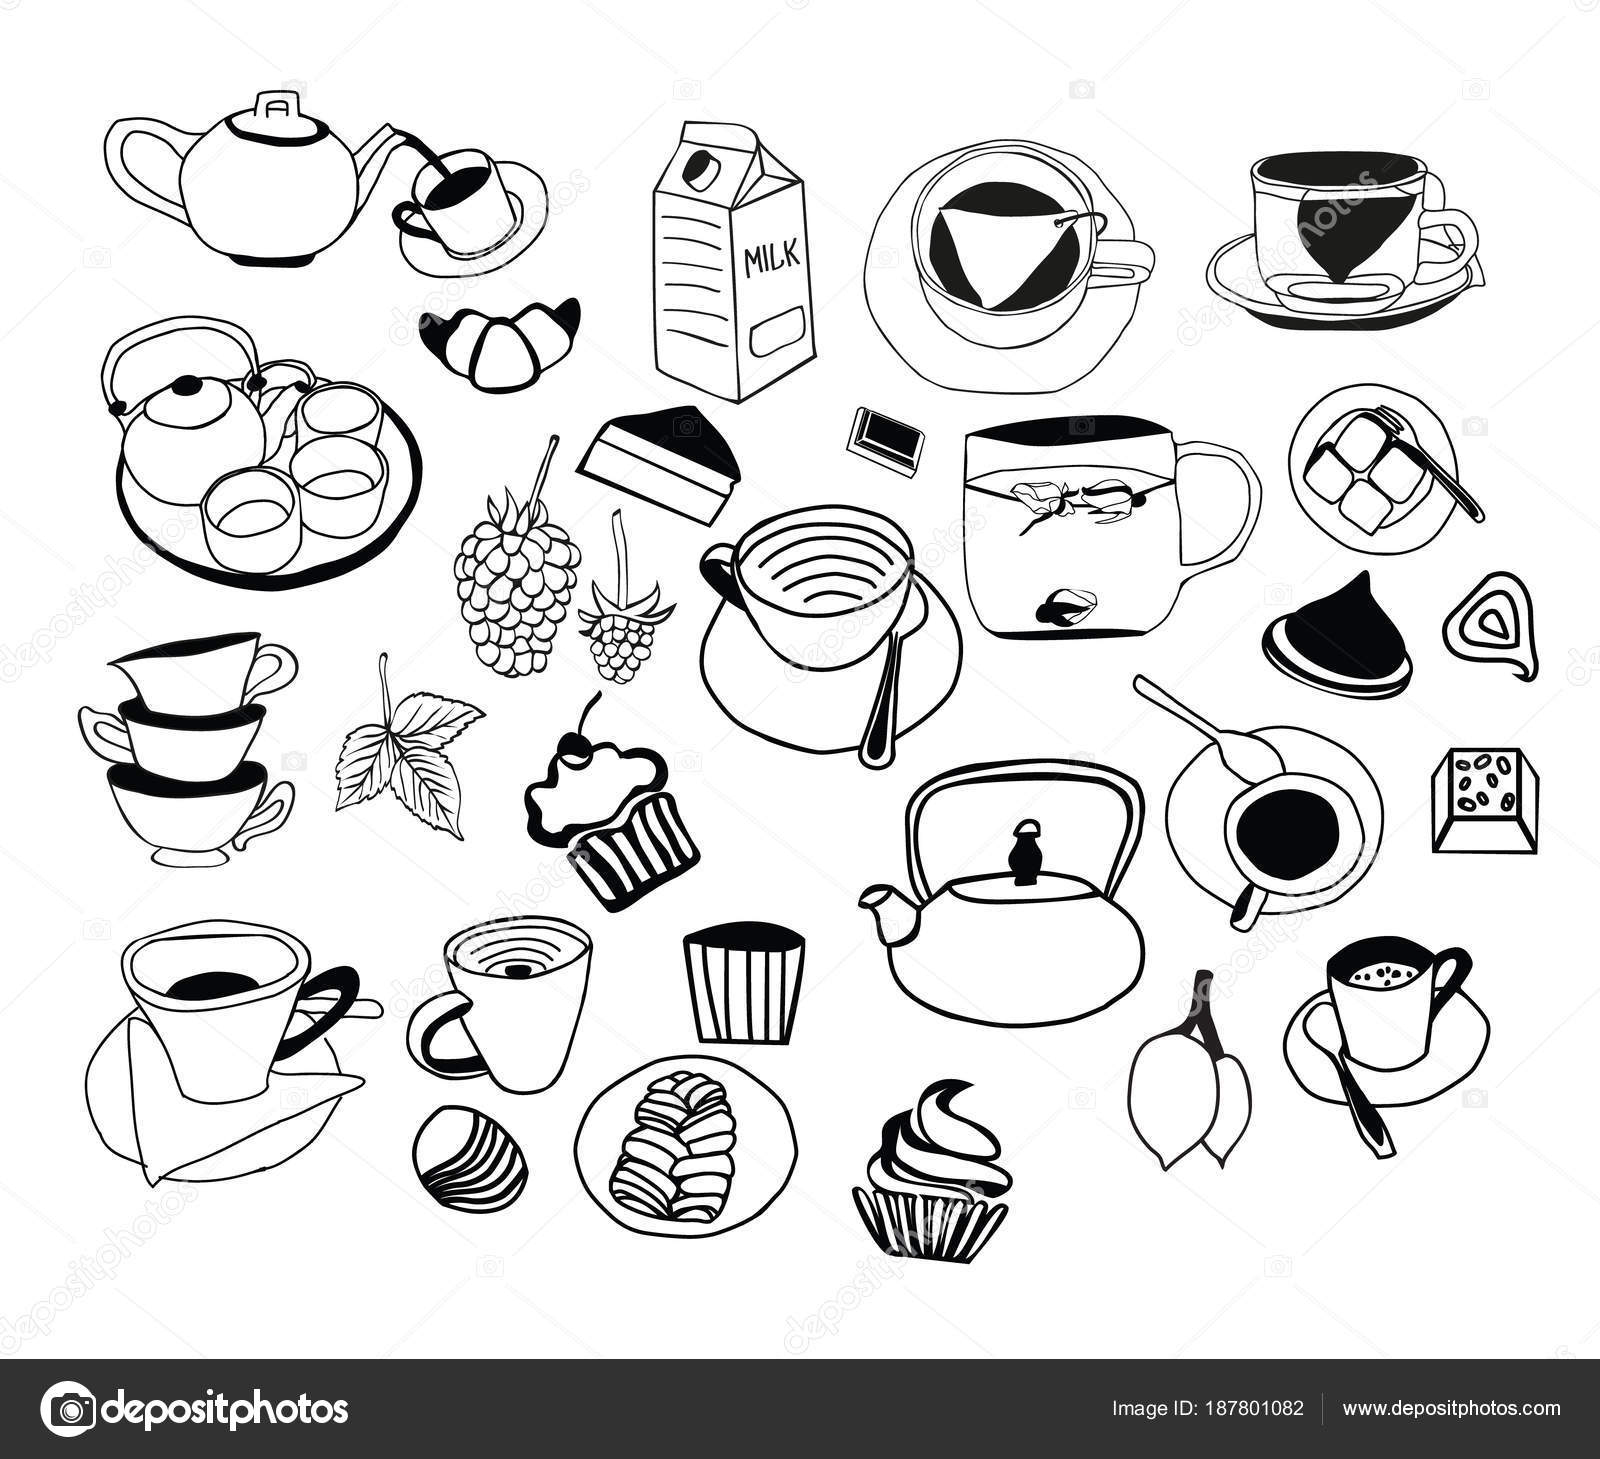 Collection of hand drawn sketches on the theme of tea teapots cups other utensils and daily product